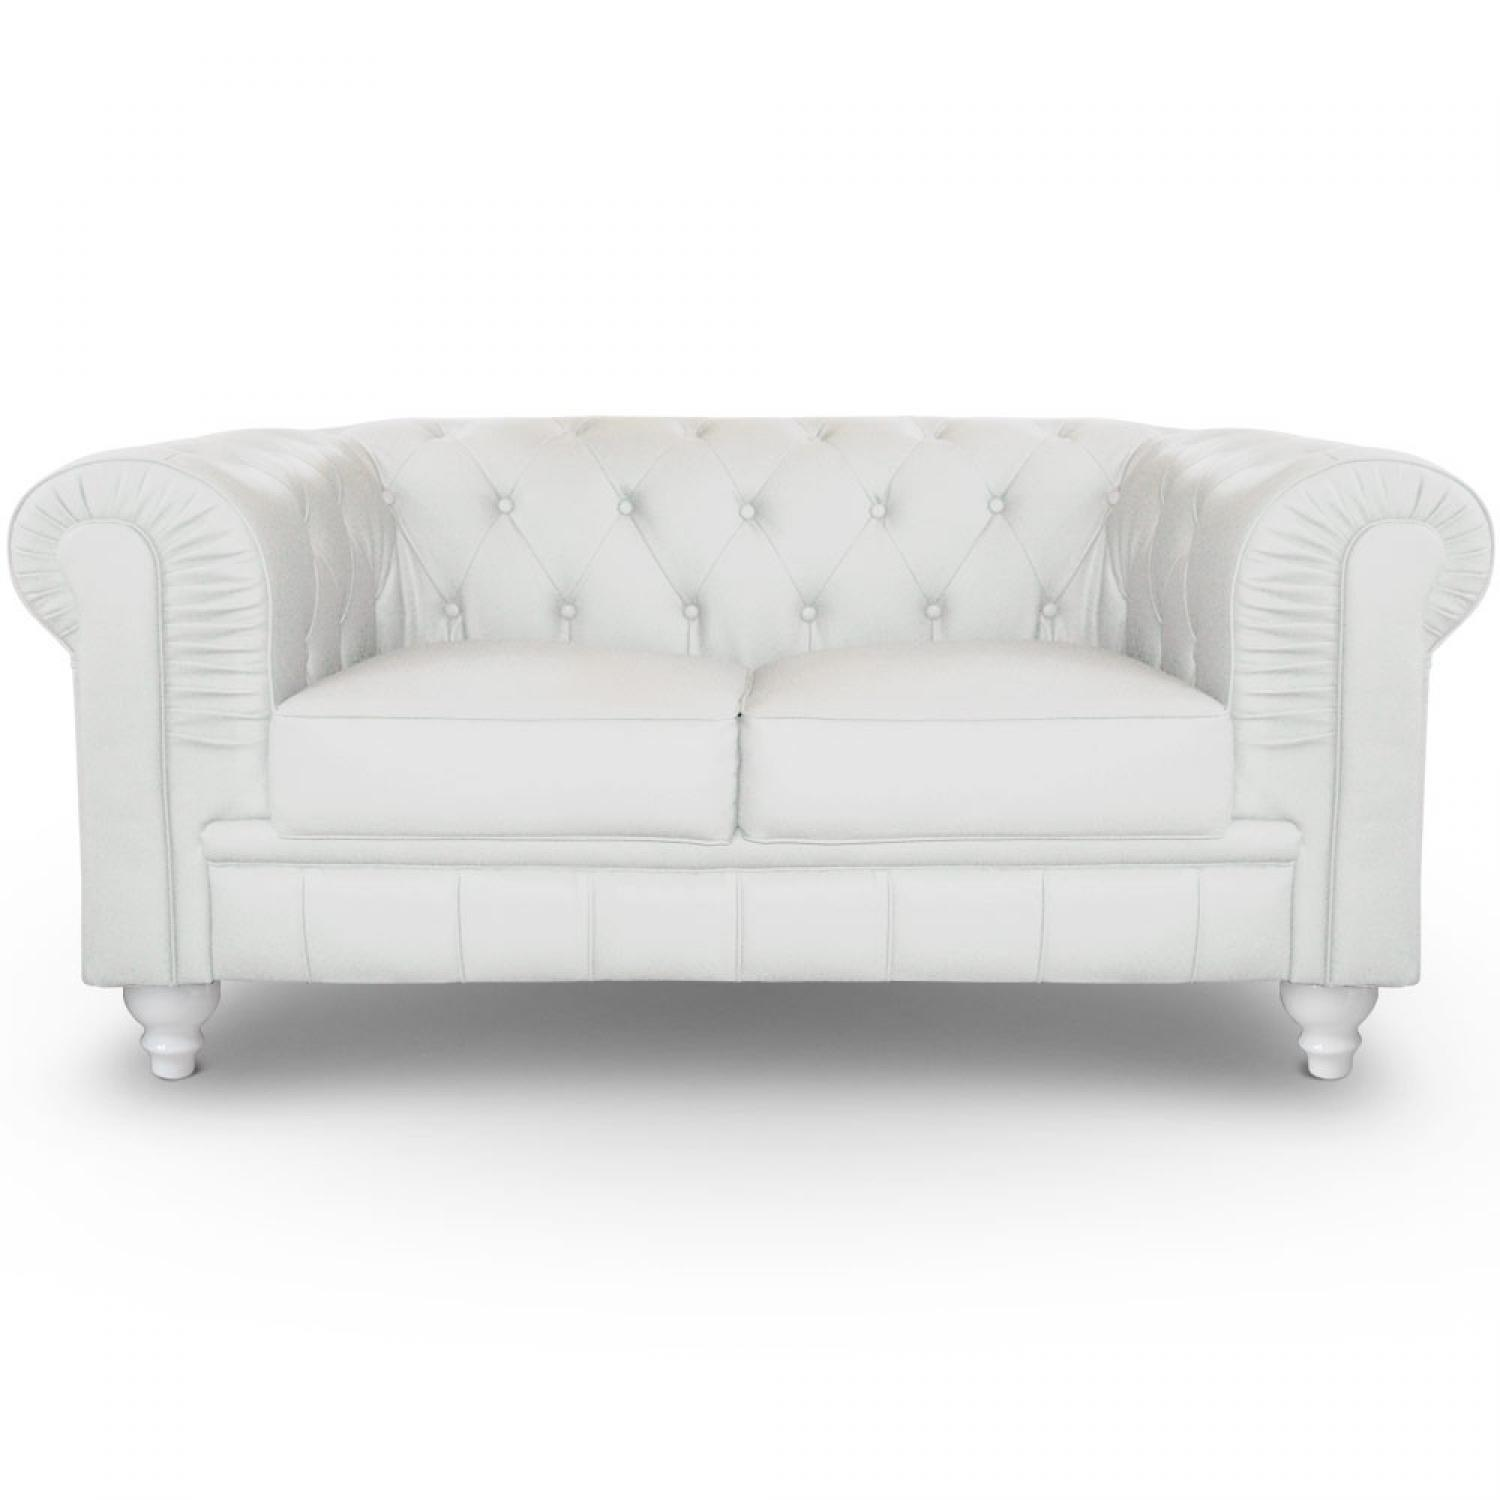 Awesome Canape Chesterfield Blanc